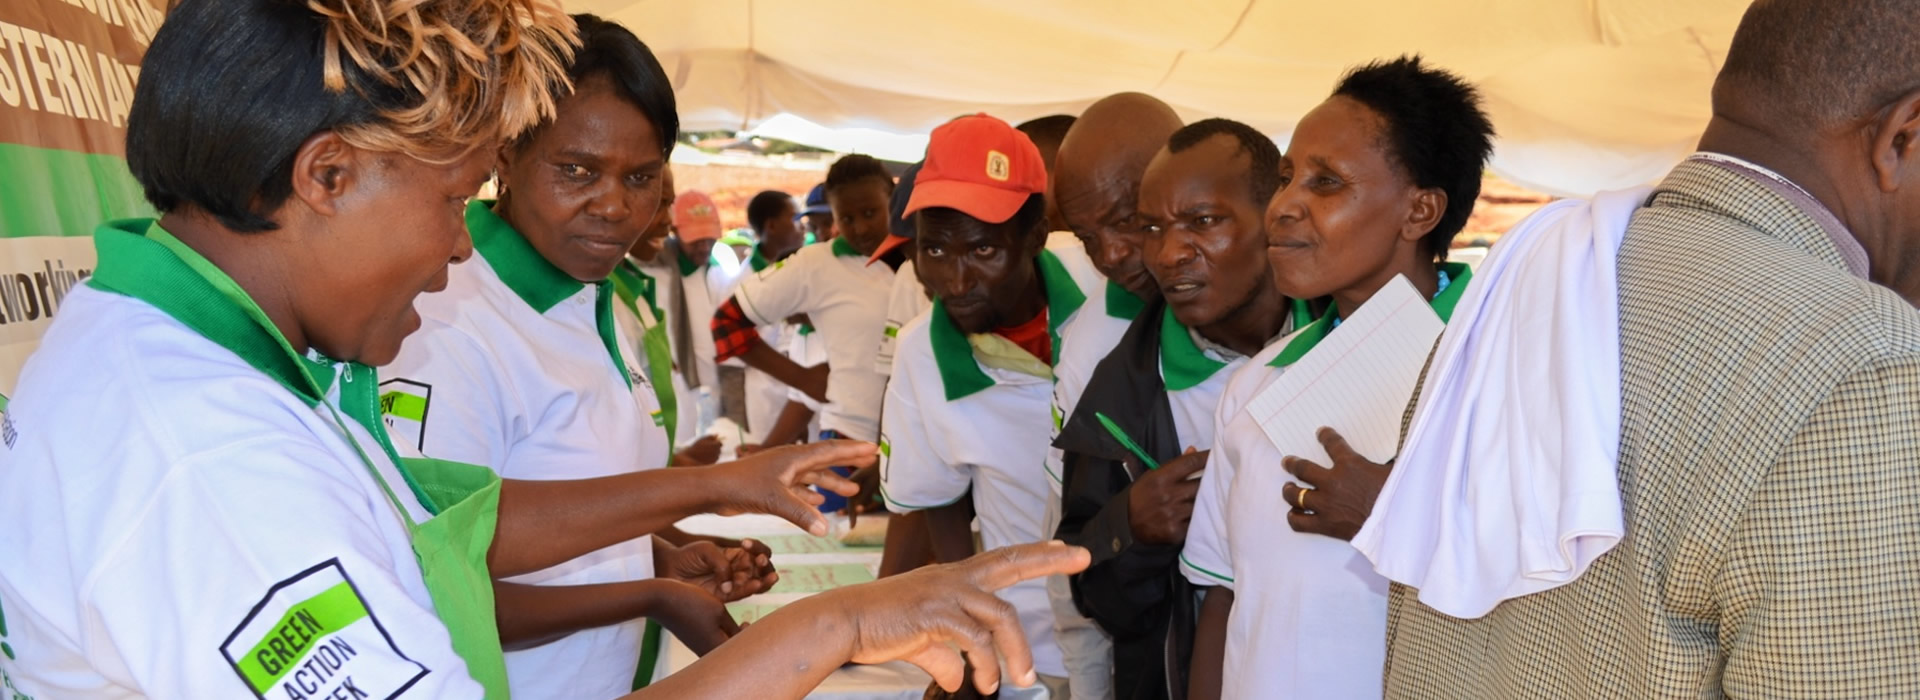 Farmers Exhibitions during World Food Day Celebrations at Lower Eastern Zone